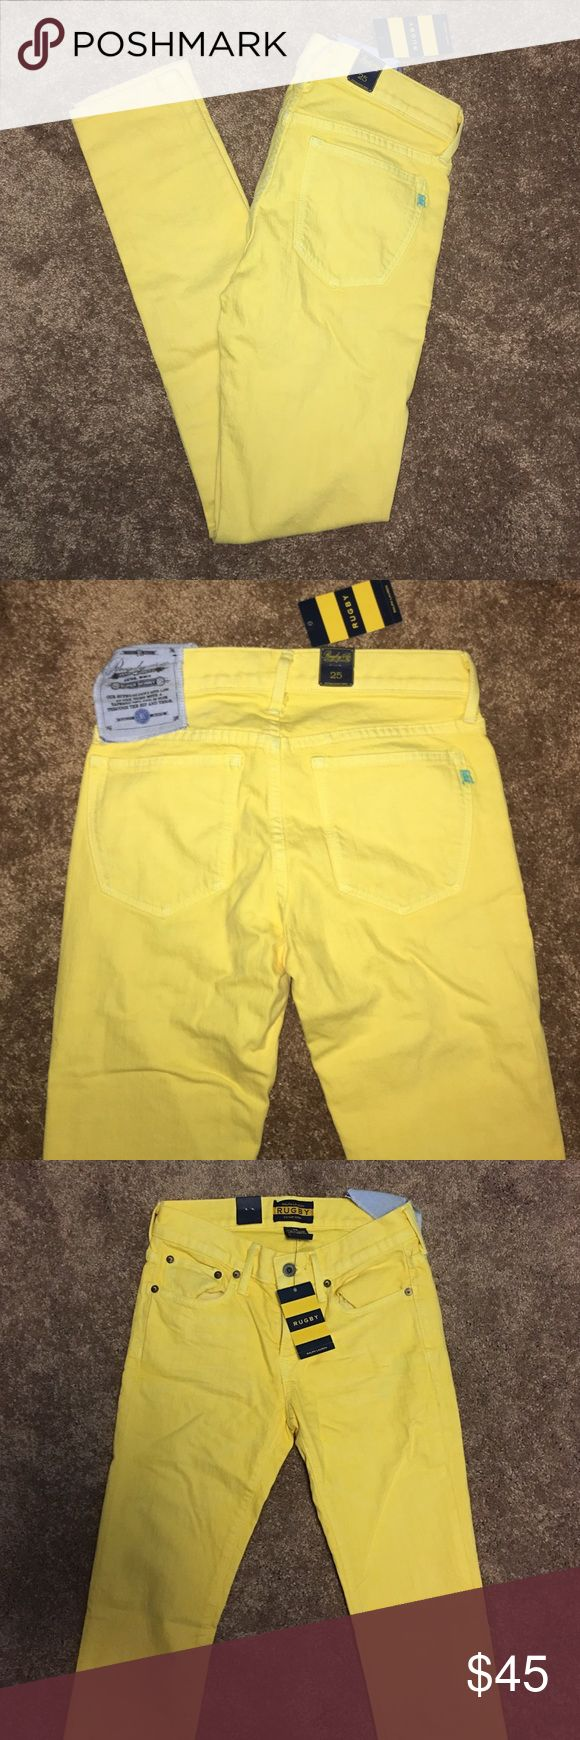 Ralph Lauren Rugby Yellow Skinny Jeans, 25 New Ralph Lauren Rugby Yellow Skinny Jeans, size 25! Perfect color for spring and summer! Ralph Lauren Jeans Skinny